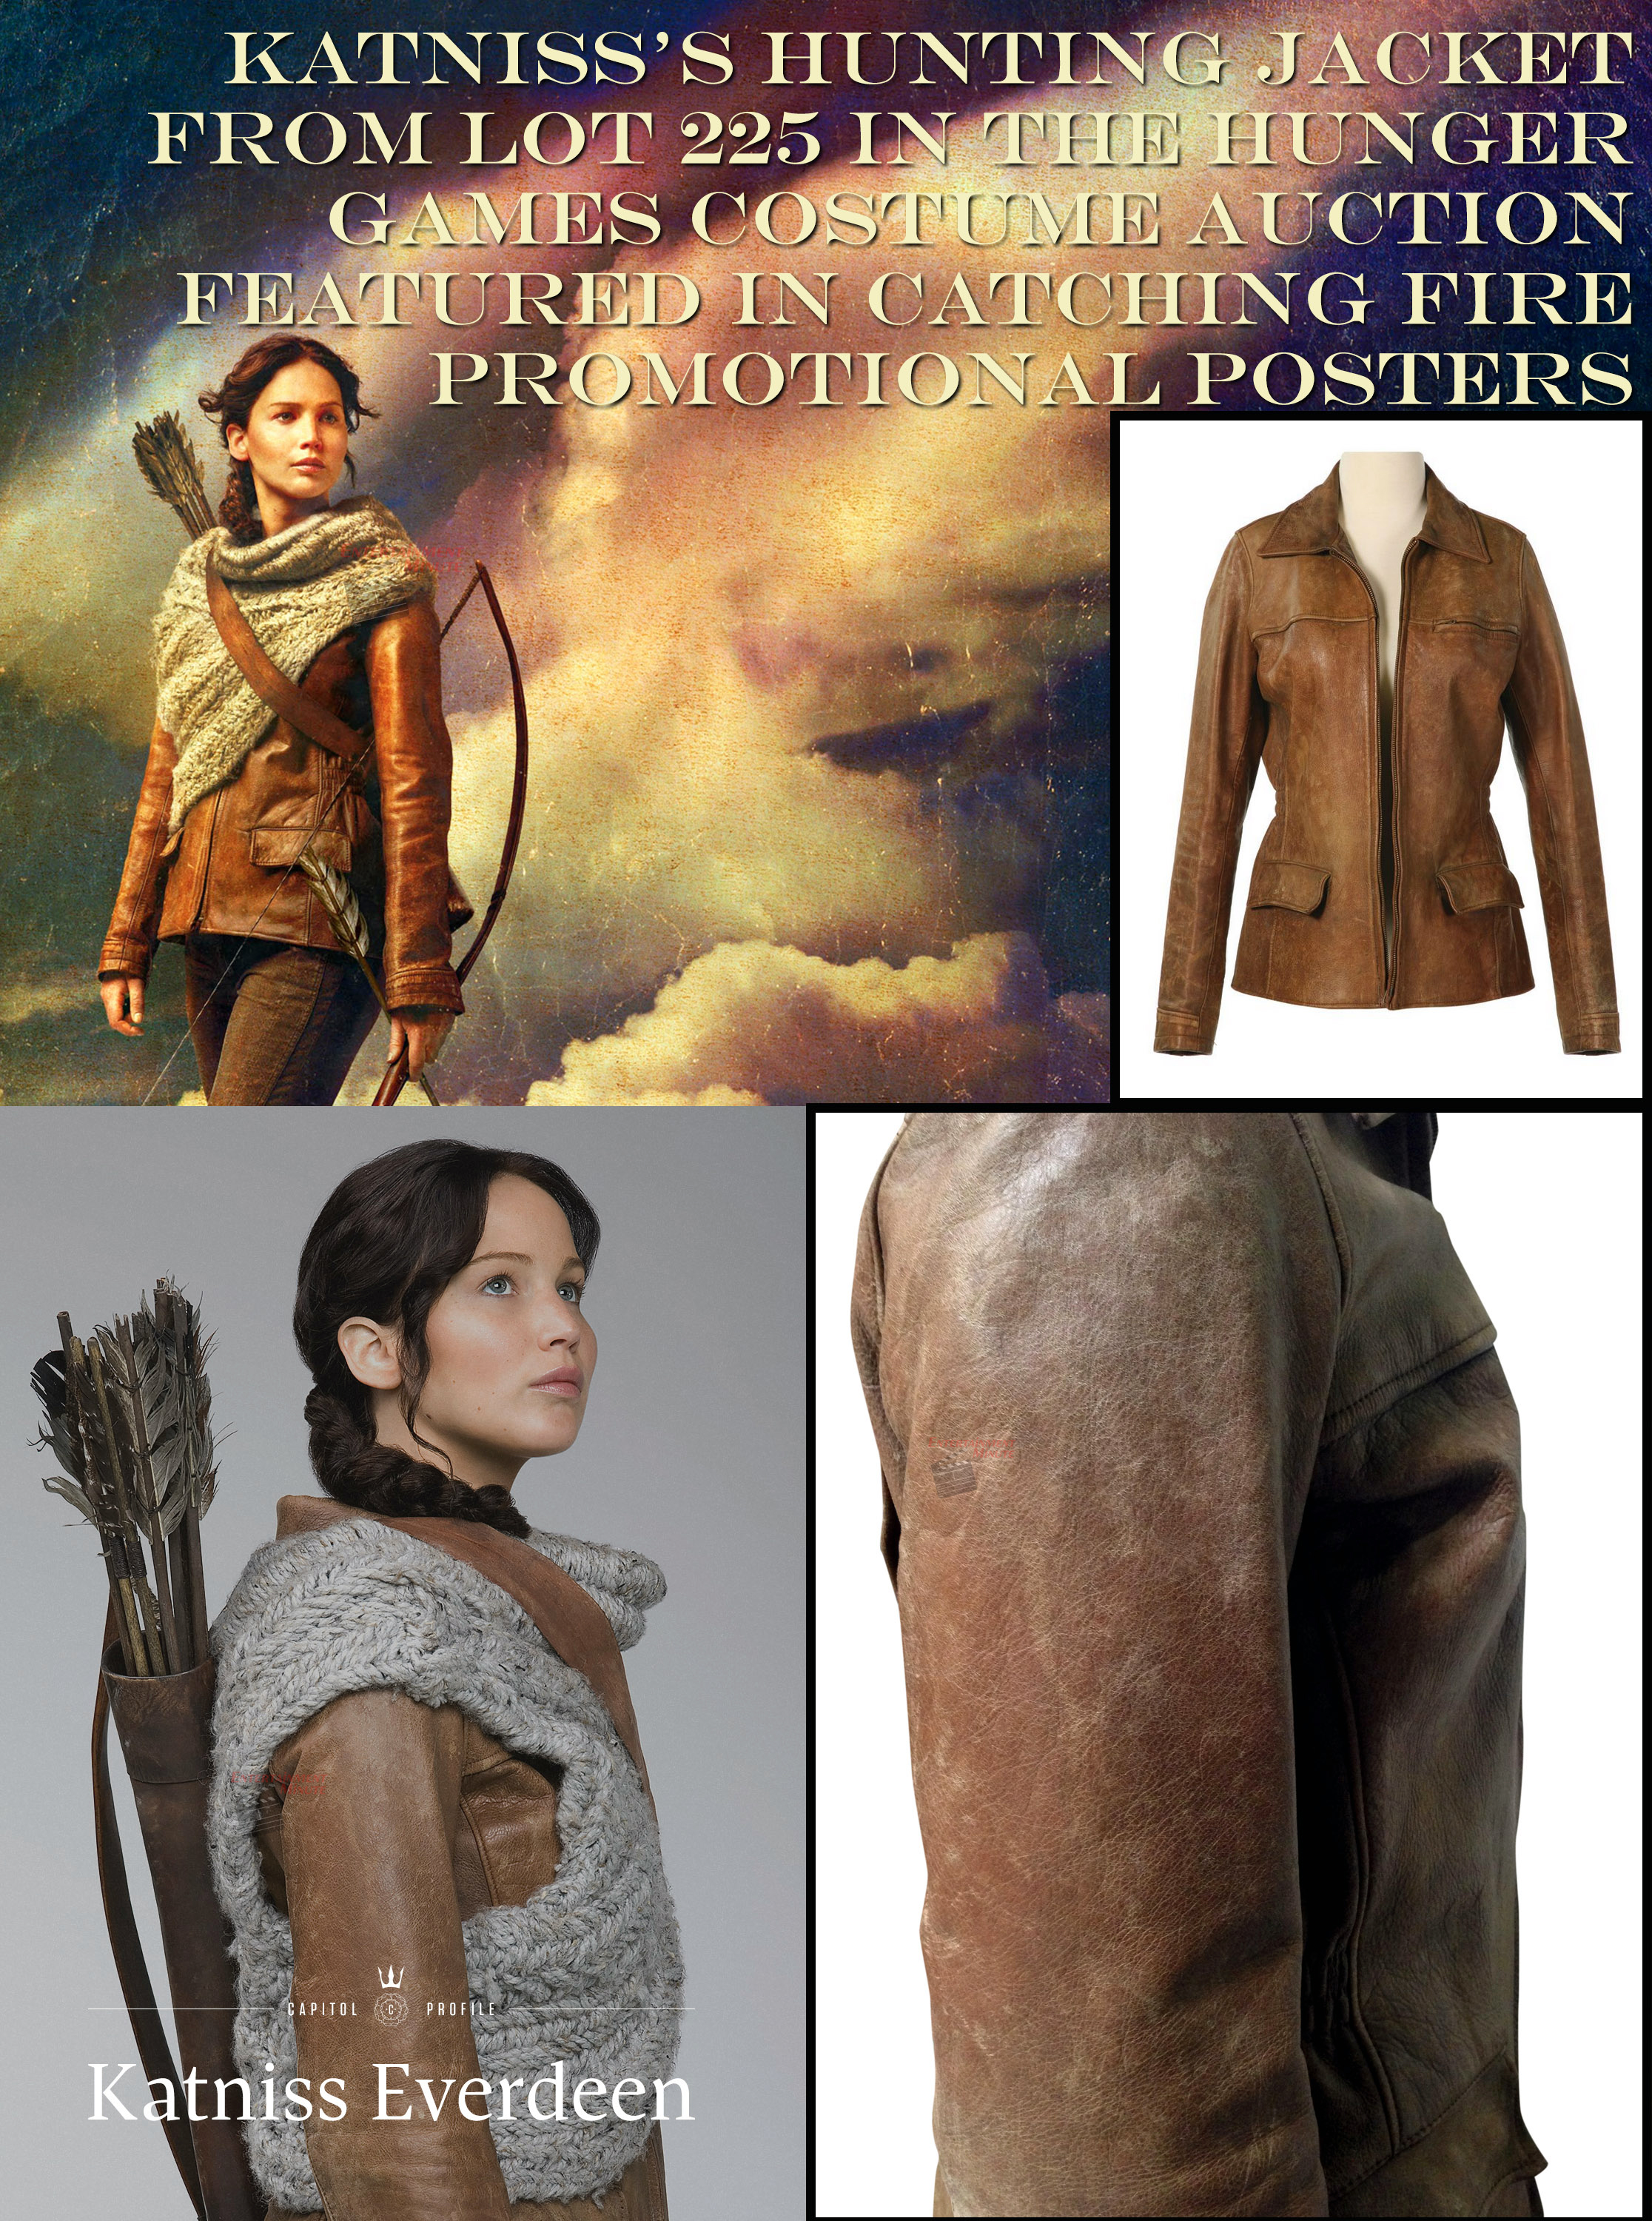 hunger games auction katniss hunting jacket photo match movie auctionjacketandposters